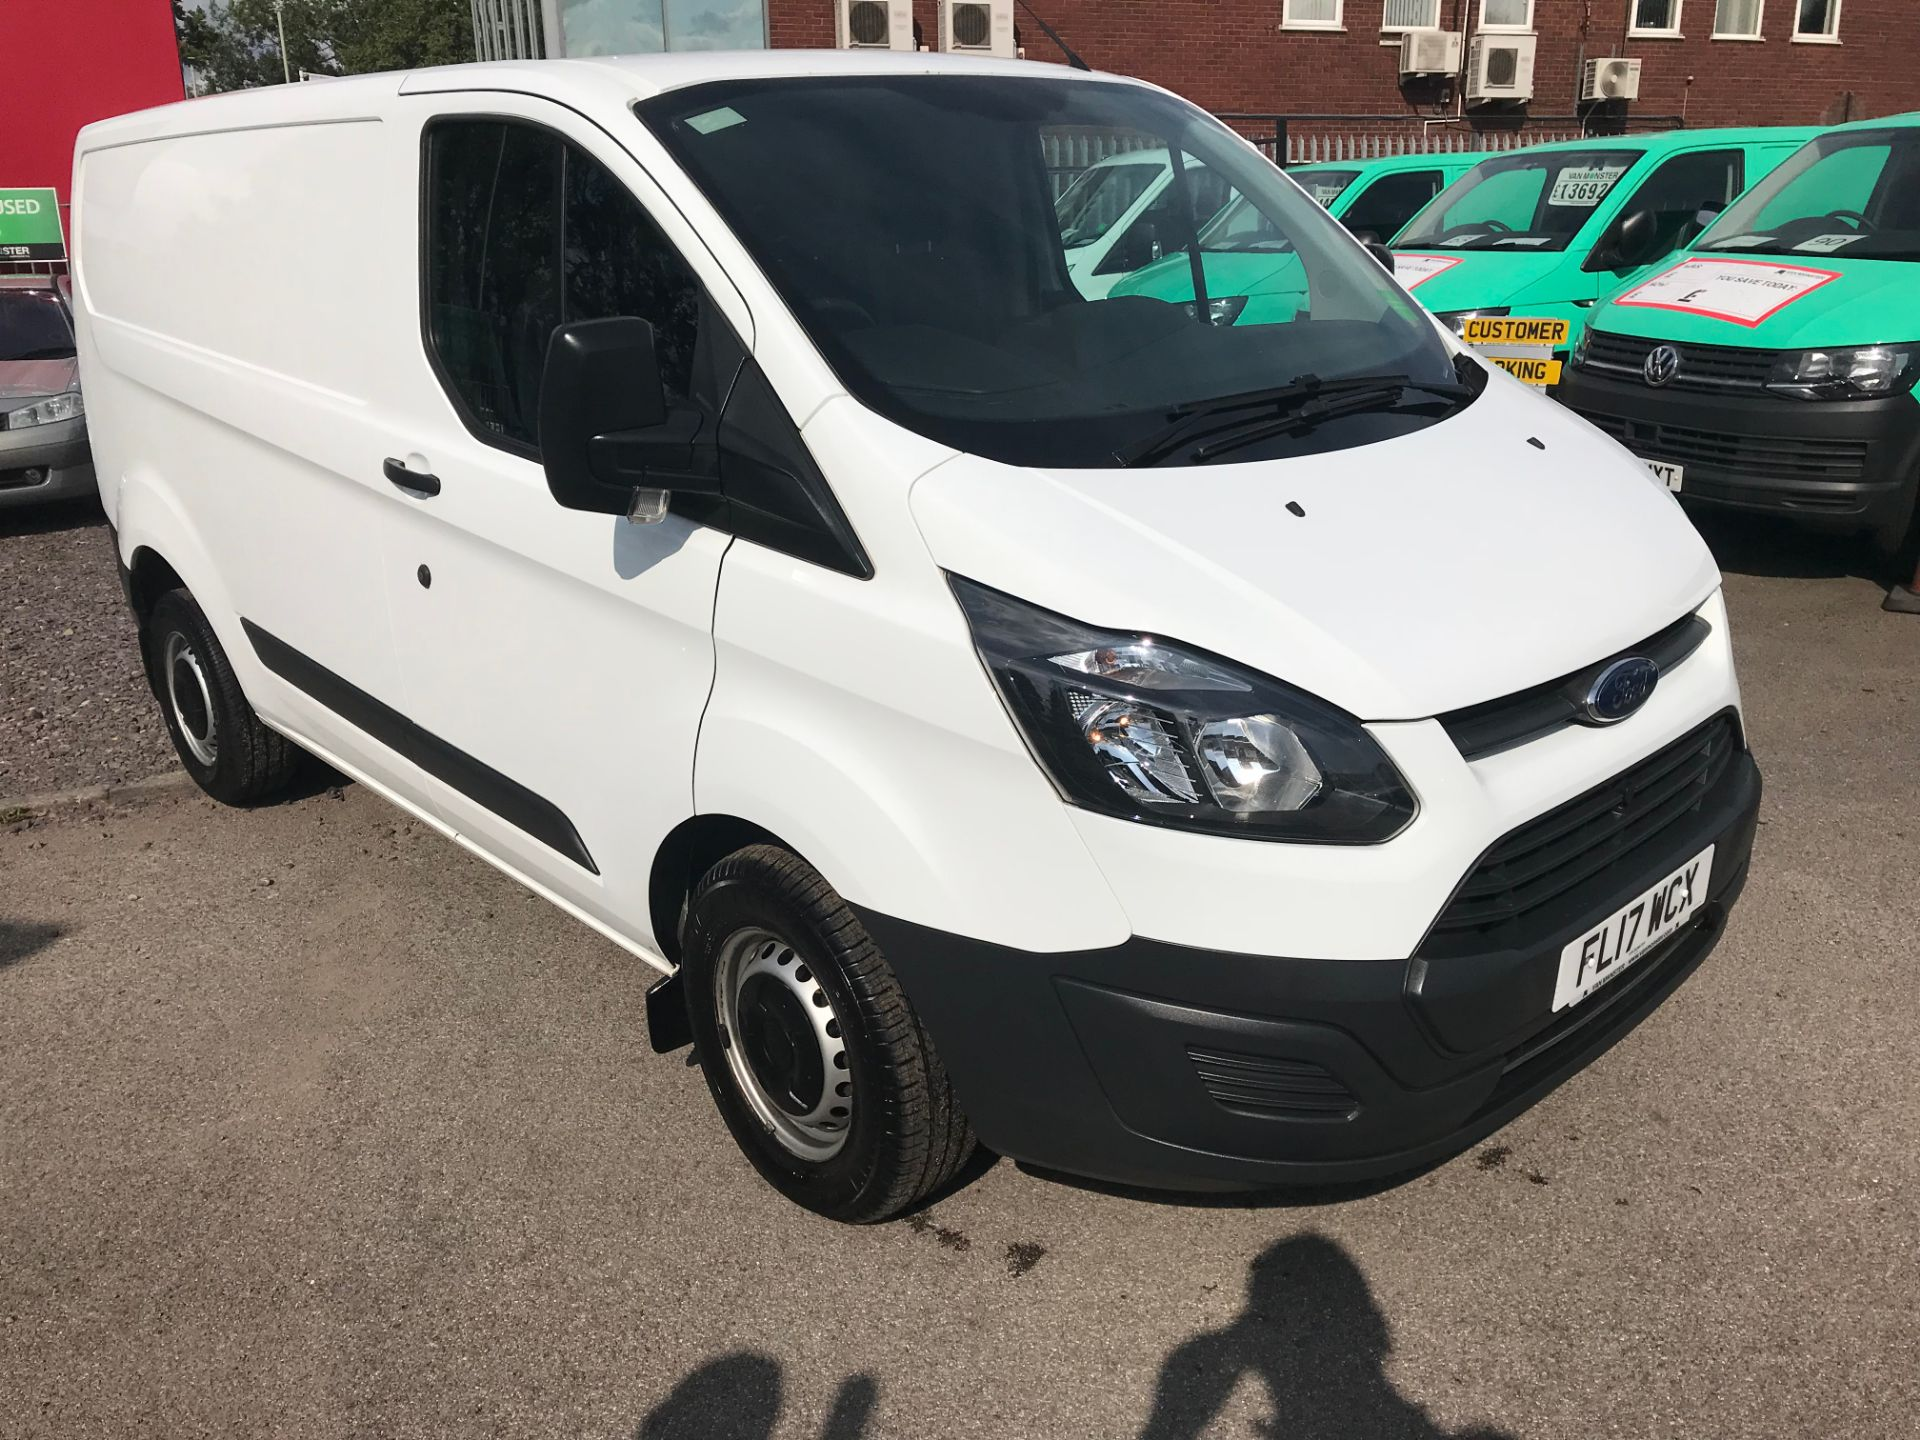 2017 Ford Transit Custom  290 L1 DIESEL FWD 2.0 TDCI 105PS LOW ROOF VAN EURO 6 (FL17WCX)